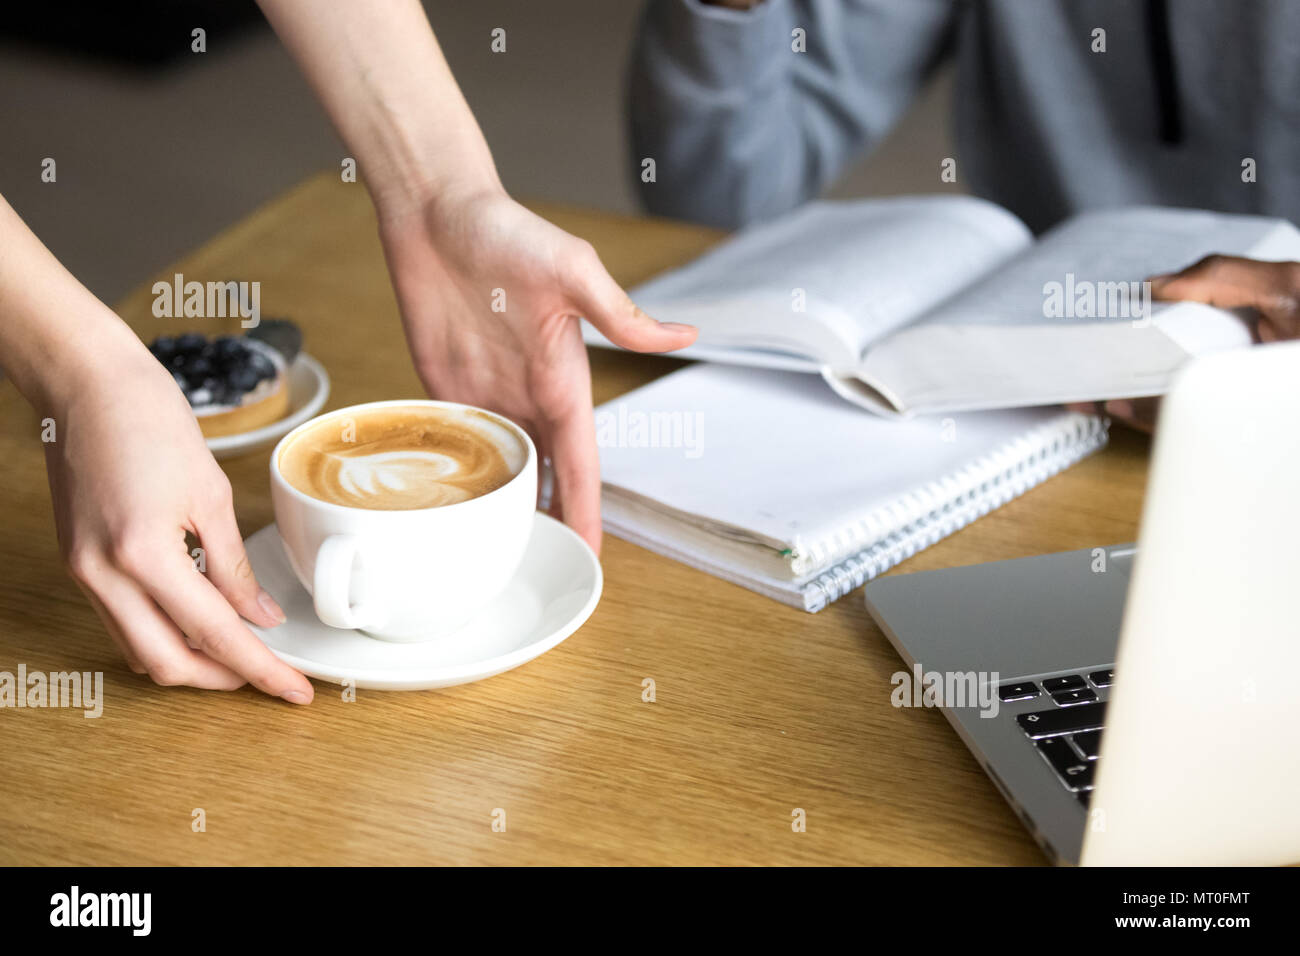 Waitress serving cappuccino to cafeteria visitor at cafe table,  - Stock Image